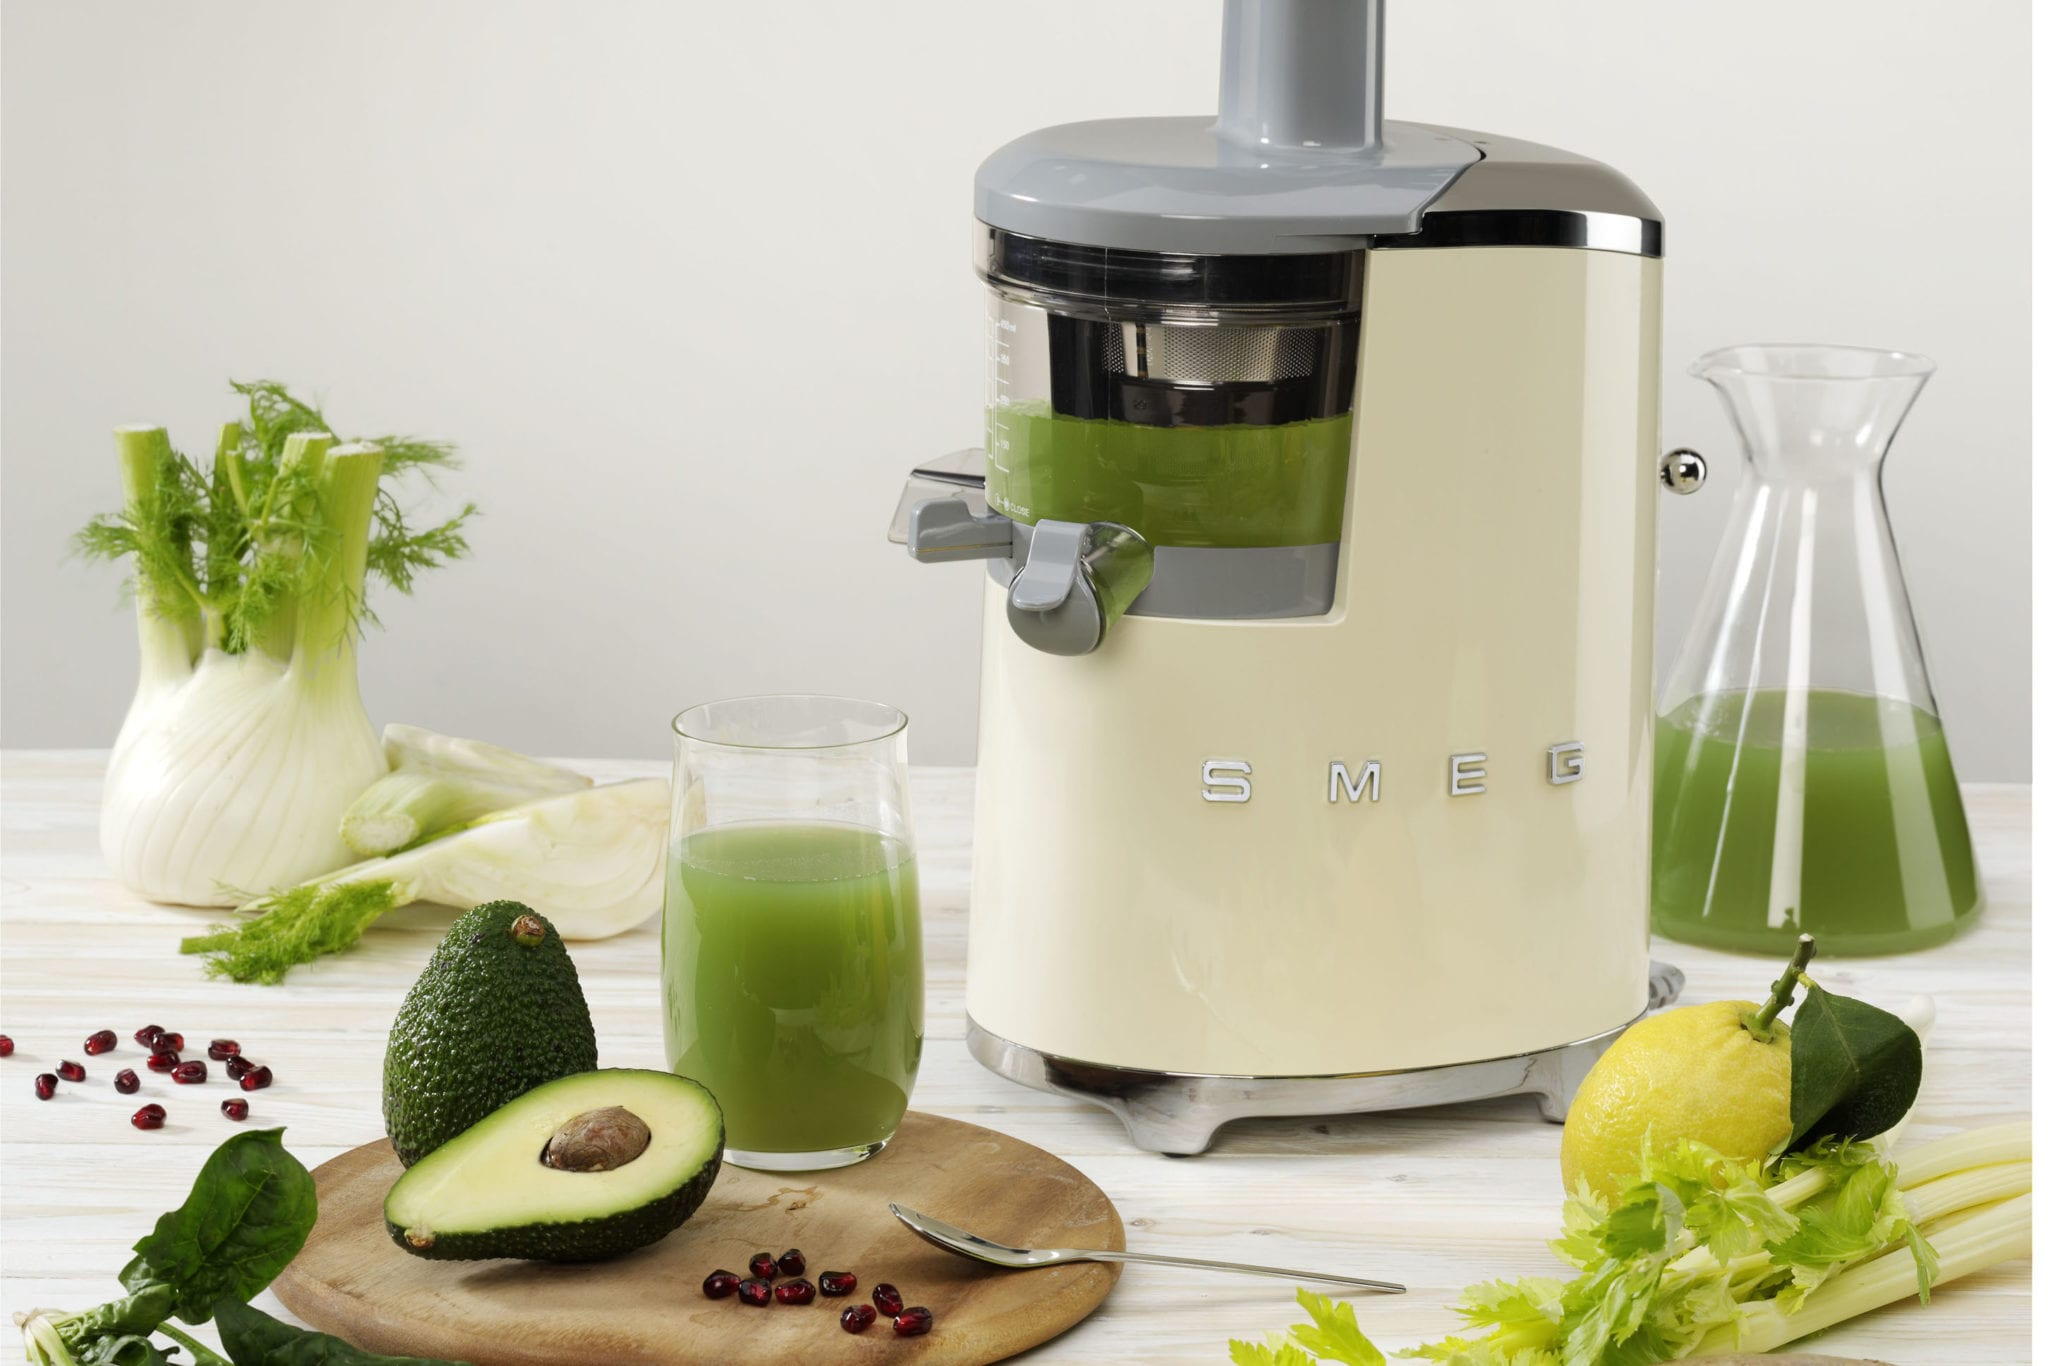 Slow Juicer Fibre : Slow juicer recipes from Smeg a new way to get your nutrients : Healthy